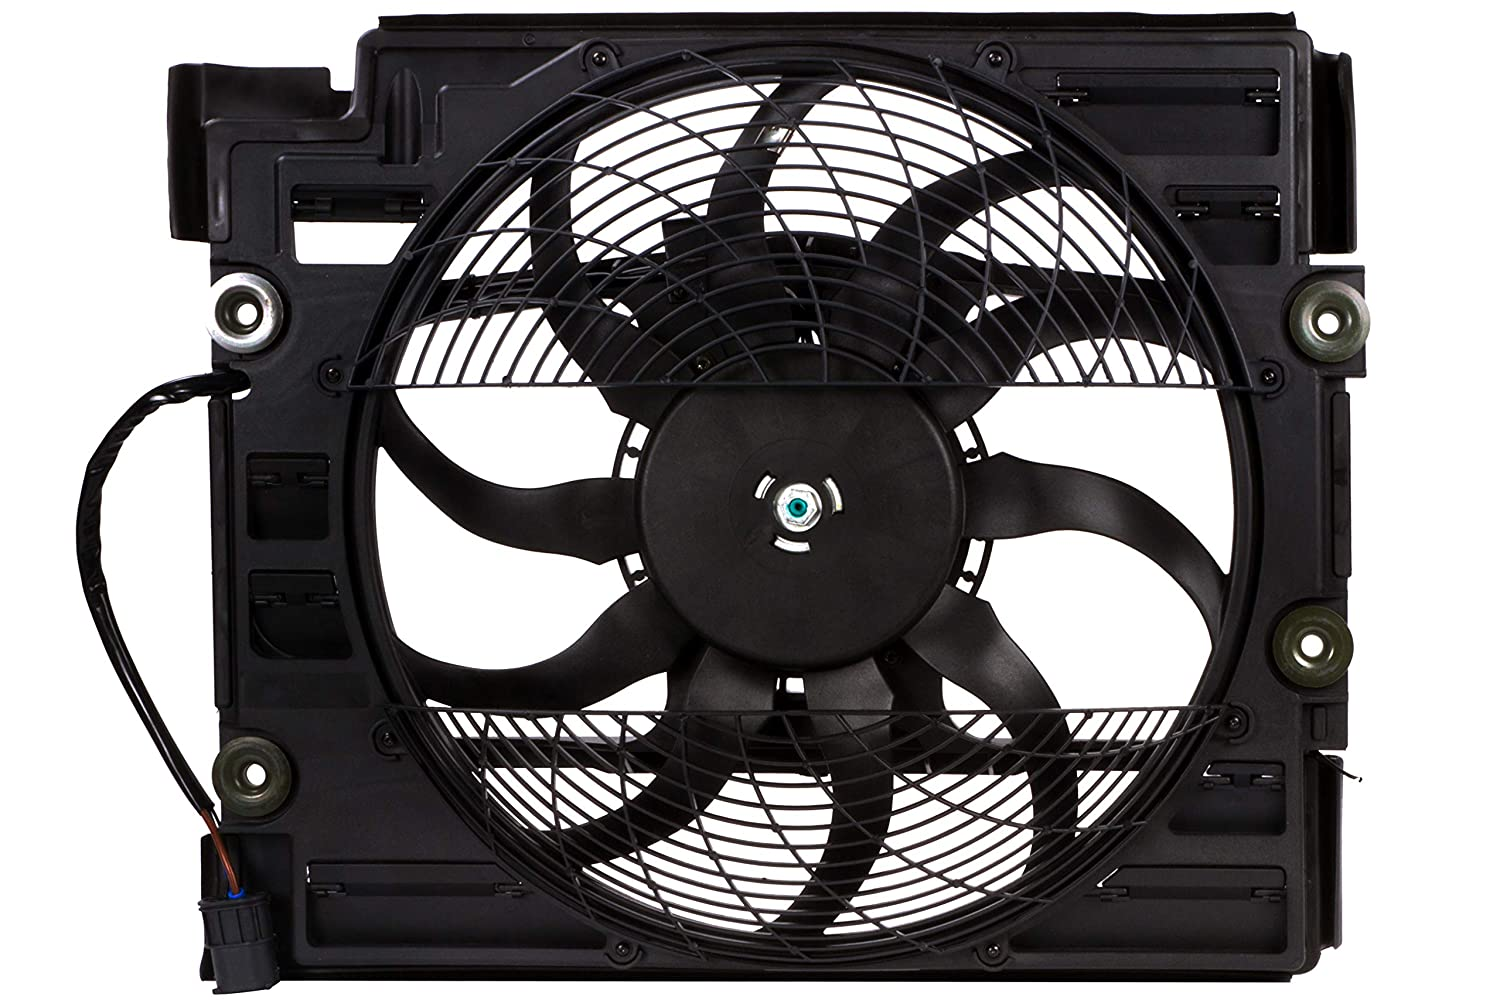 BOXI Engine Cooling Fan Assembly For BMW 5 SERIES E39 525i 528i 528iT 530i 540i M5 64546921395